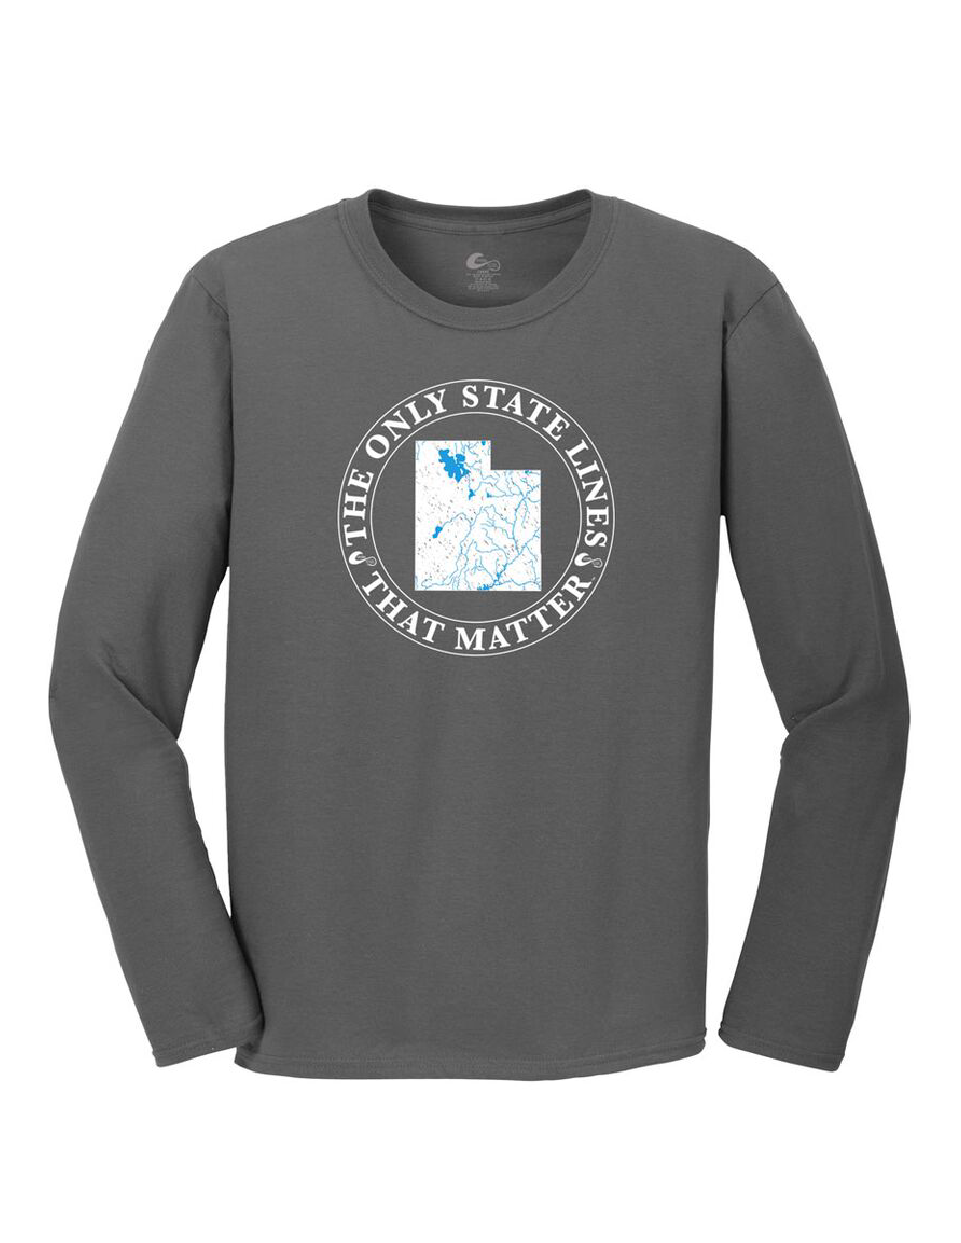 Utah State Waterways Long Sleeve T-Shirt